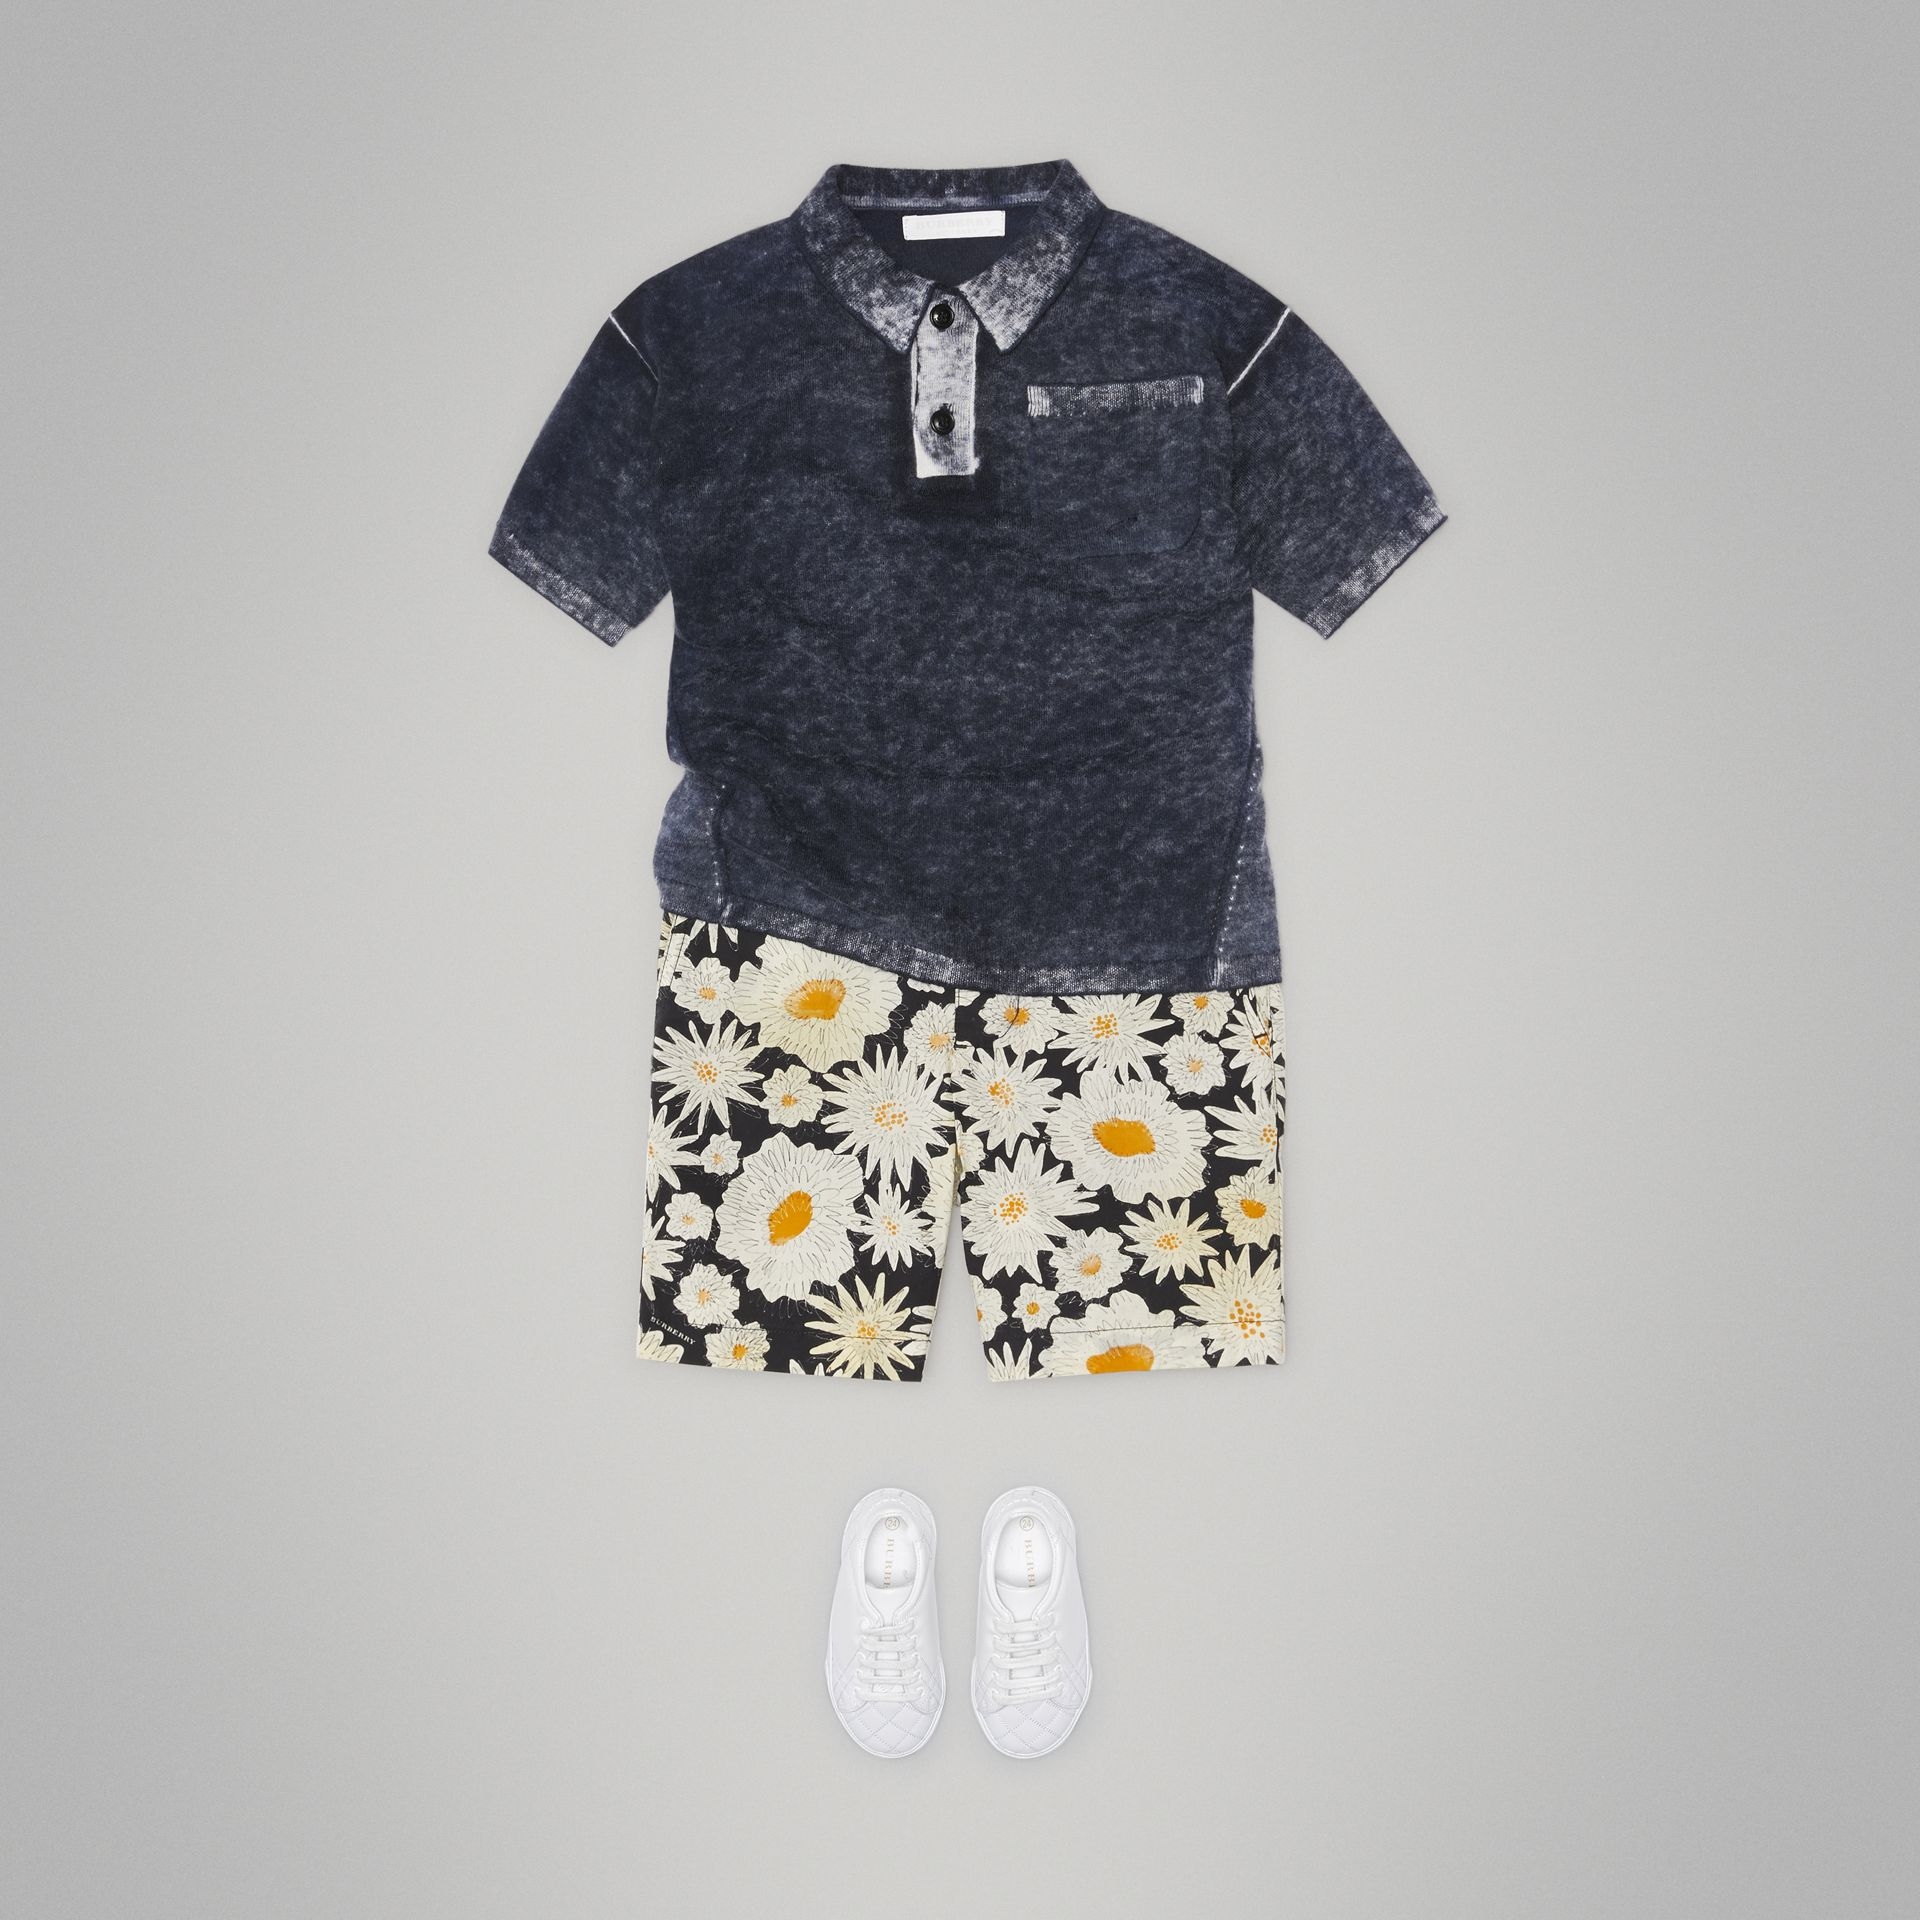 Daisy Print Cotton Chino Shorts in Black | Burberry - gallery image 2